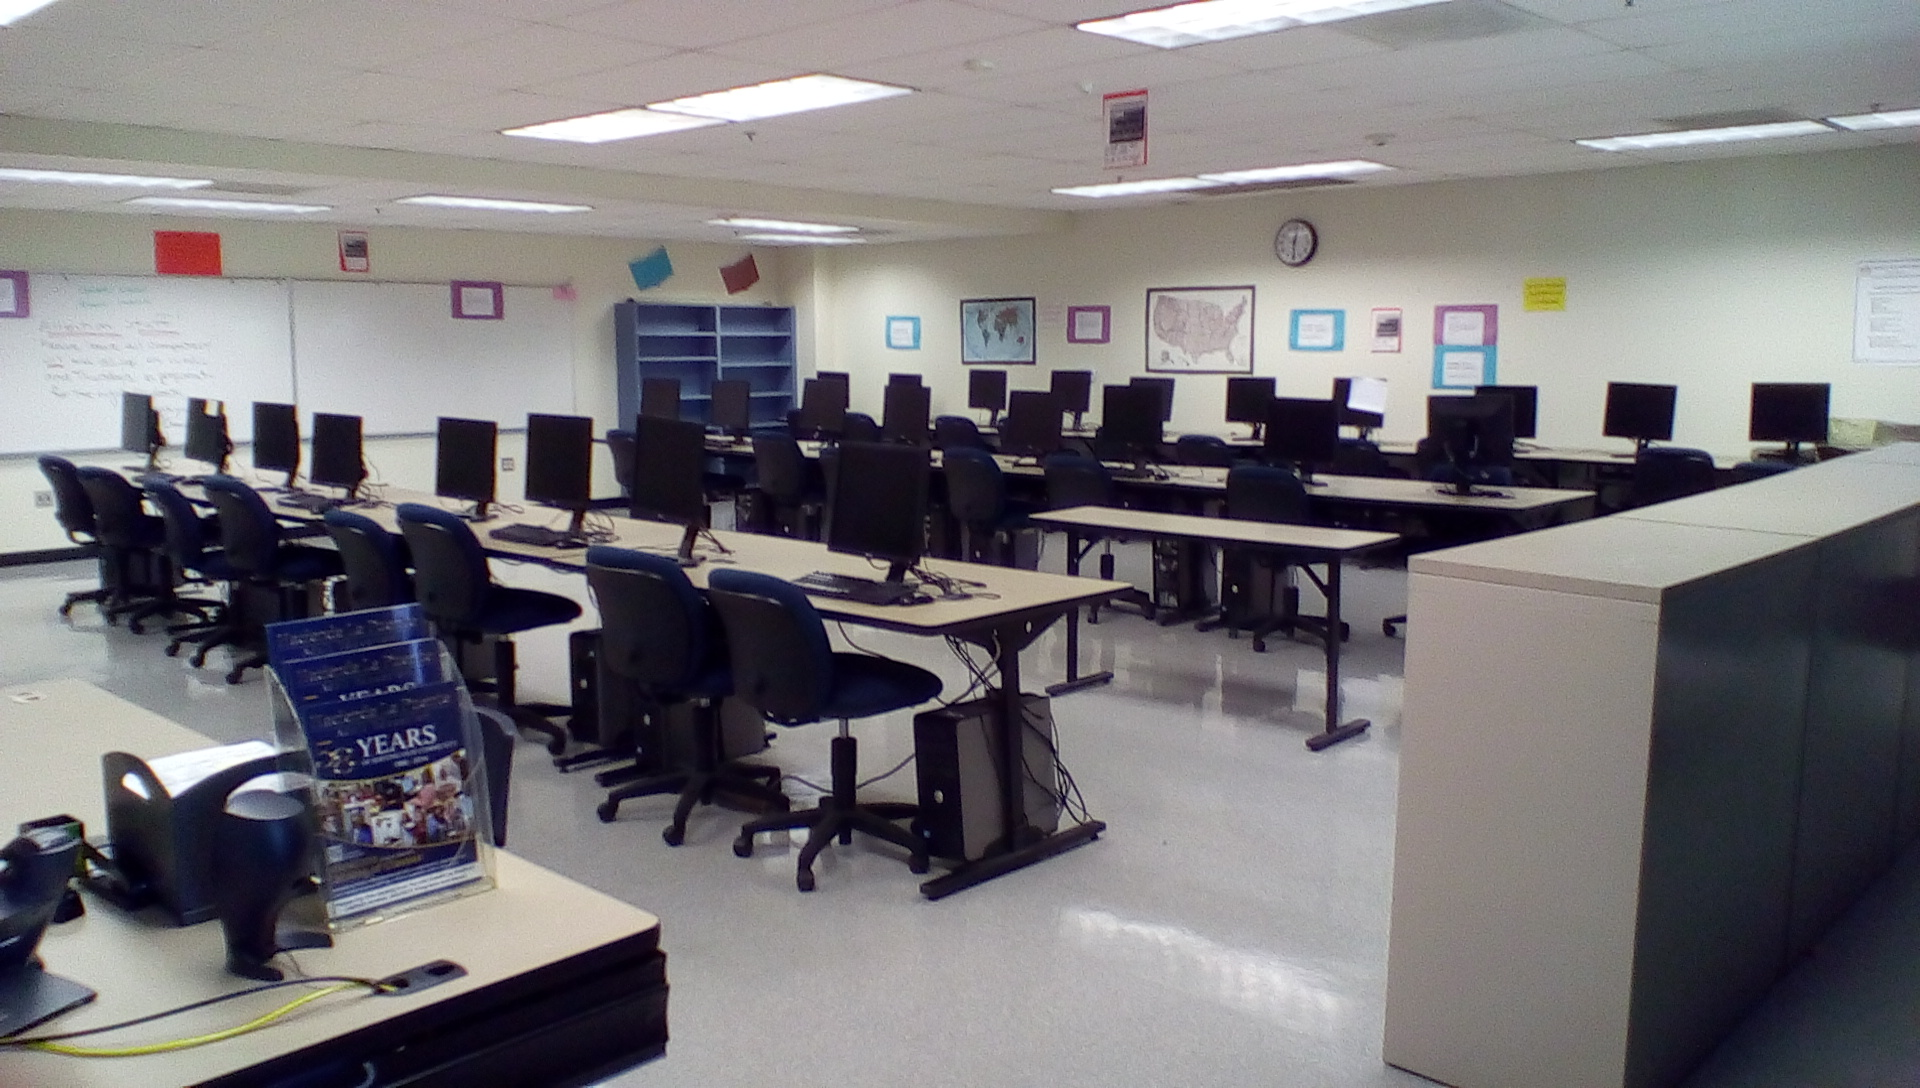 Computer room classroom set up